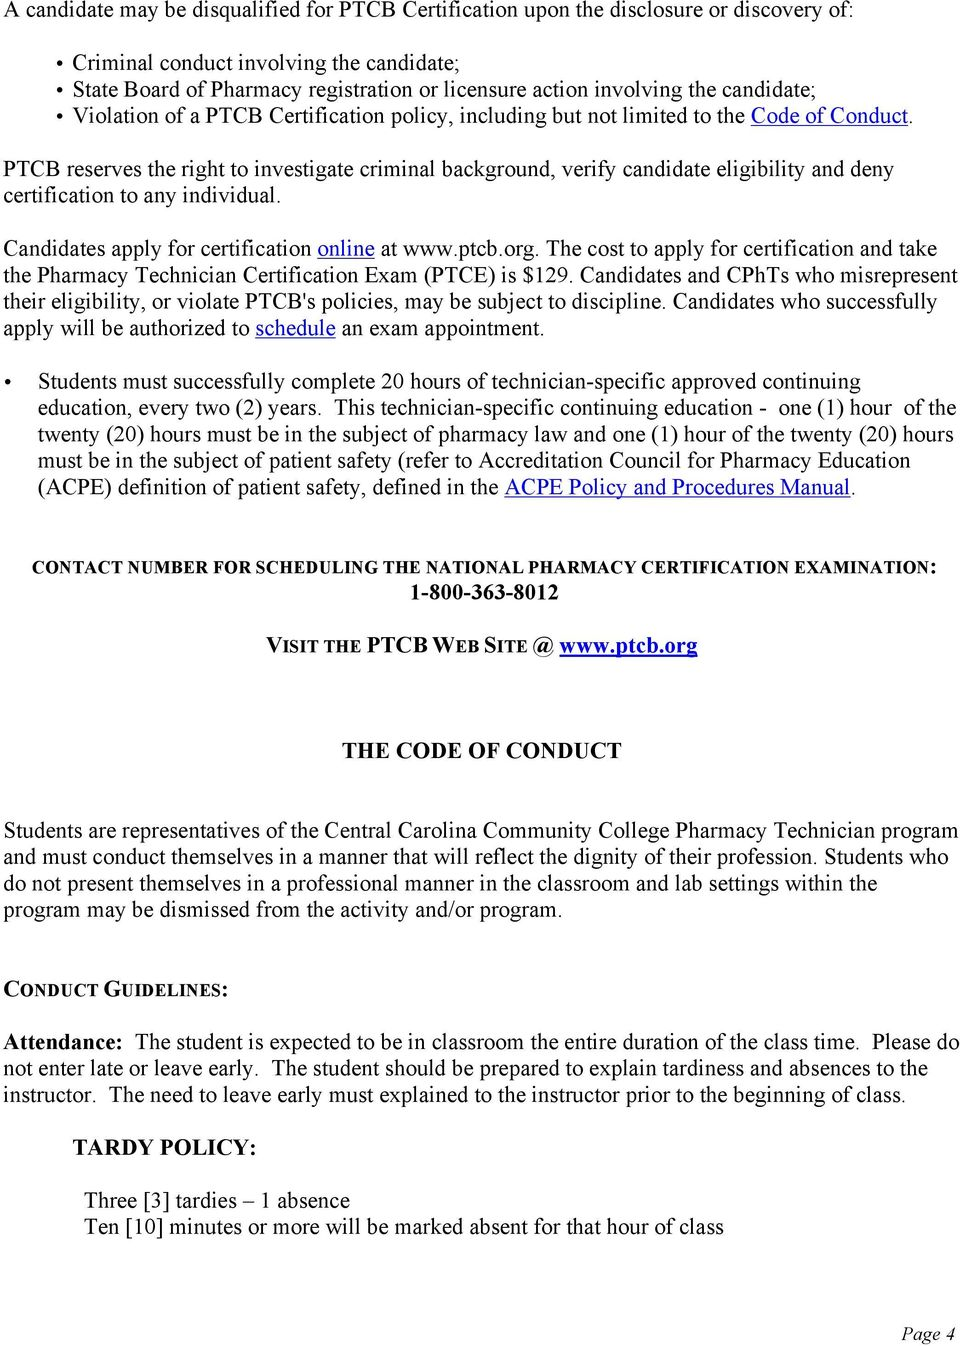 PTCB reserves the right to investigate criminal background, verify candidate eligibility and deny certification to any individual. Candidates apply for certification online at www.ptcb.org.